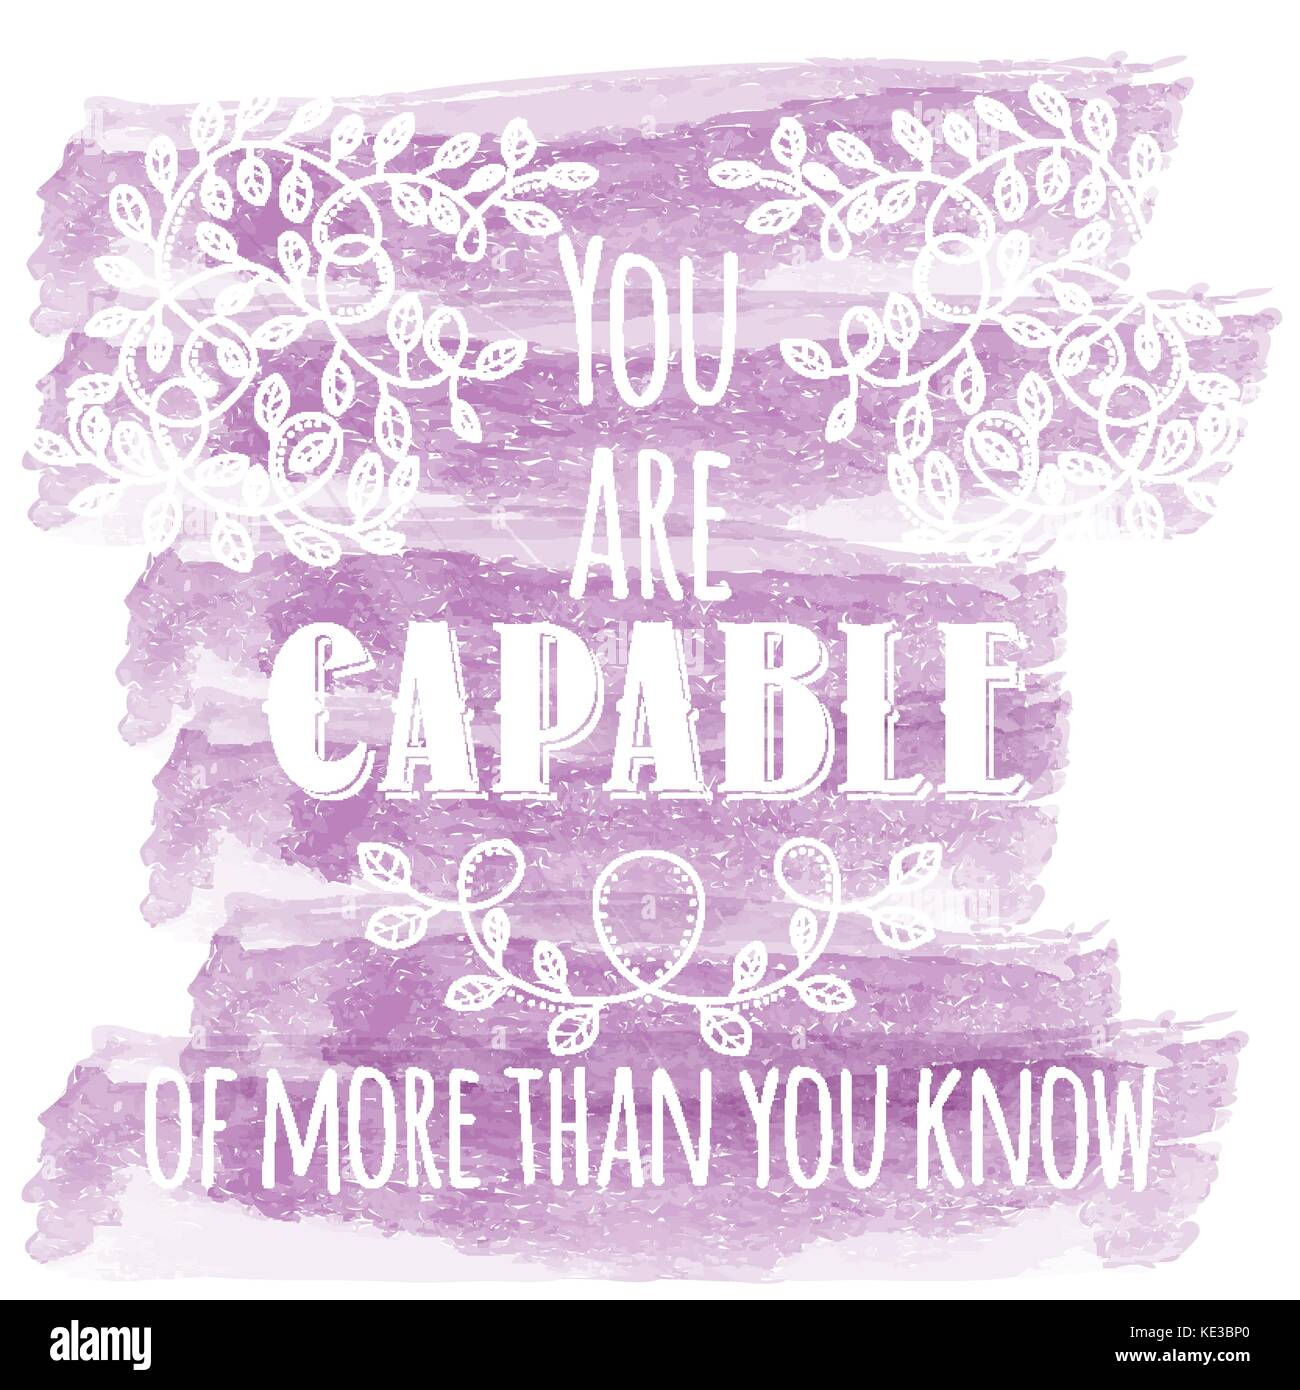 You are capable of more than you know. Inspiring Creative Motivation Quote. Vector Typography Banner Design Concept - Stock Vector